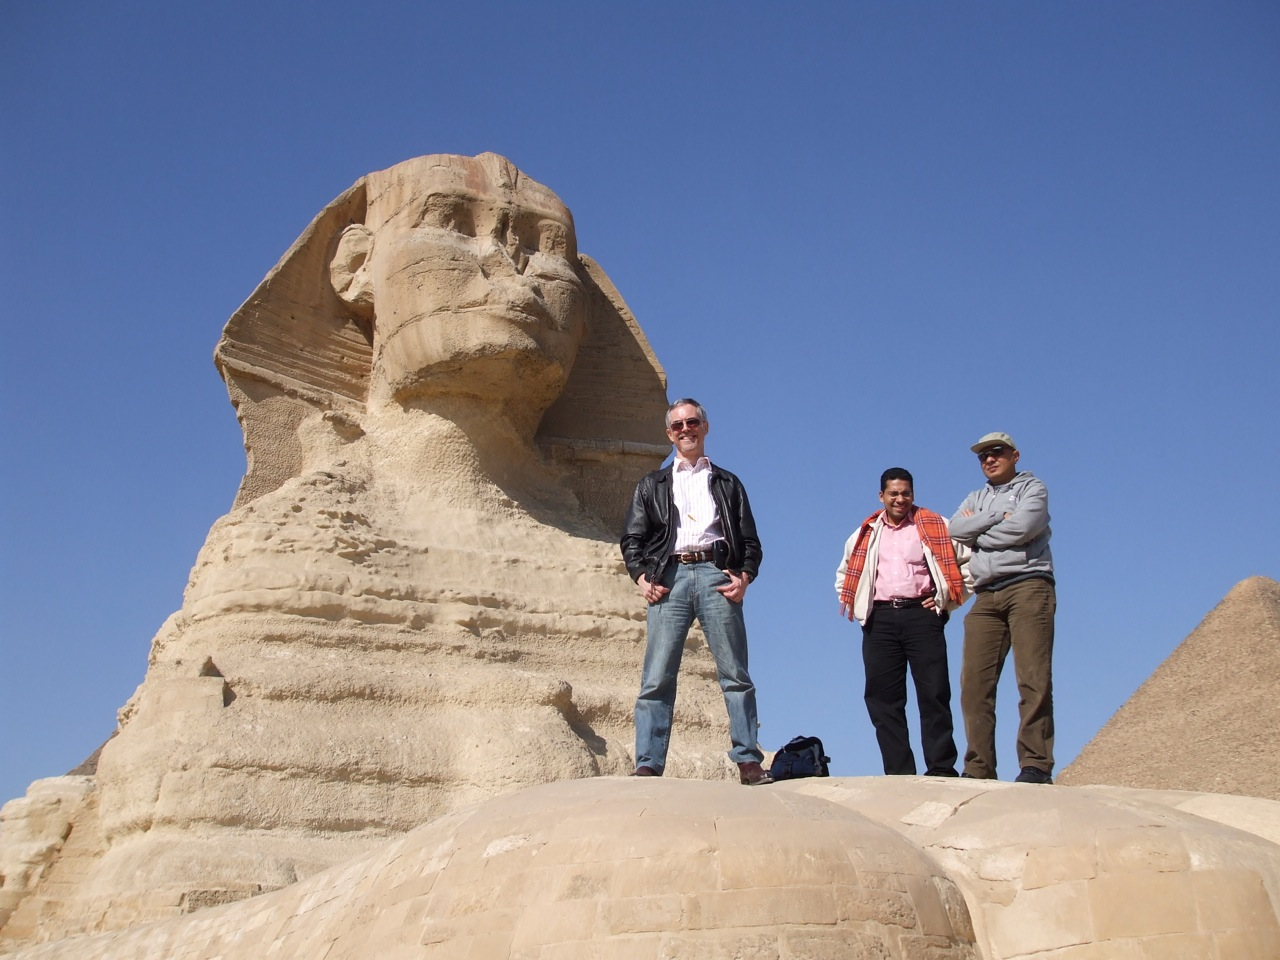 Tom and his team on the toe of The Sphinx